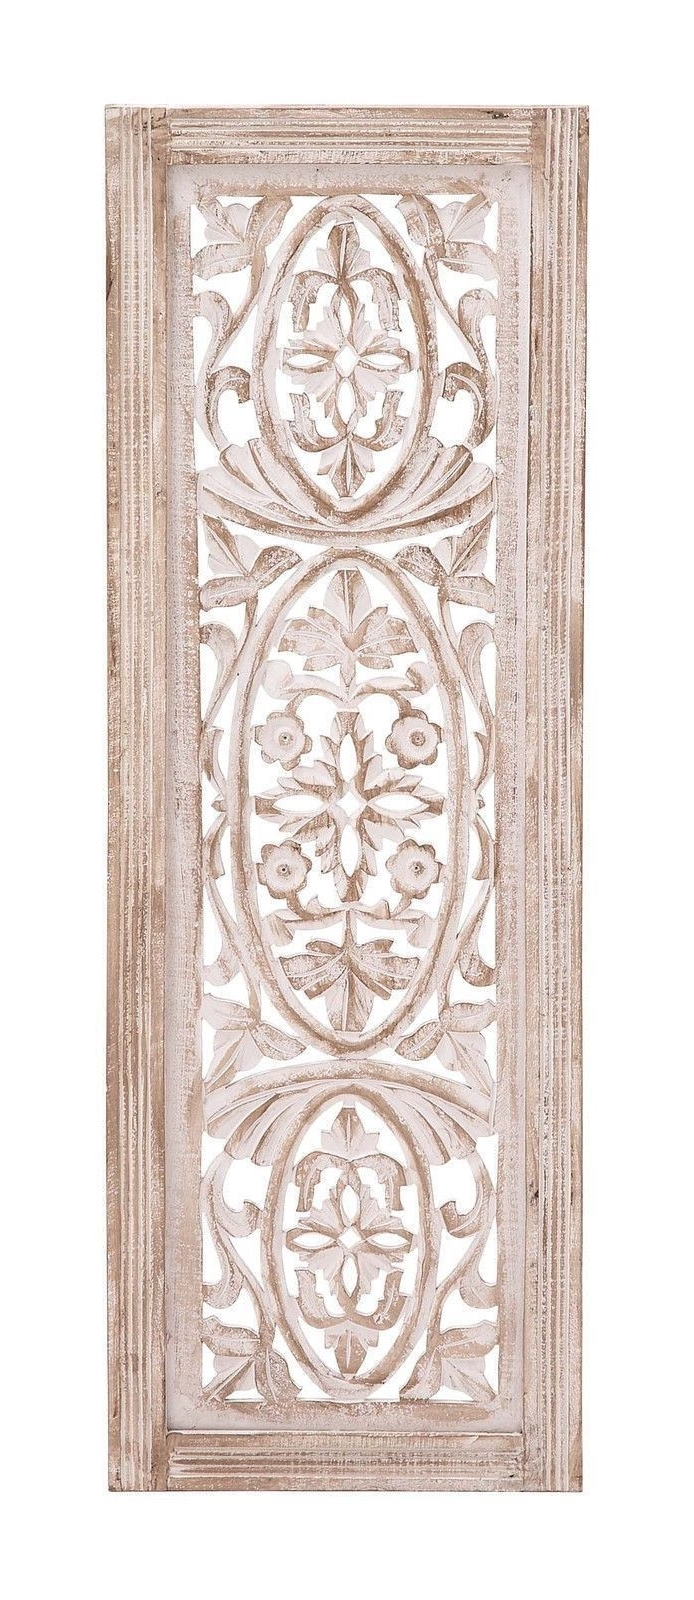 Latest White Washed Carved Wood Wall Art Panel Shabby Country Cottage In Country Style Wall Art (View 12 of 15)